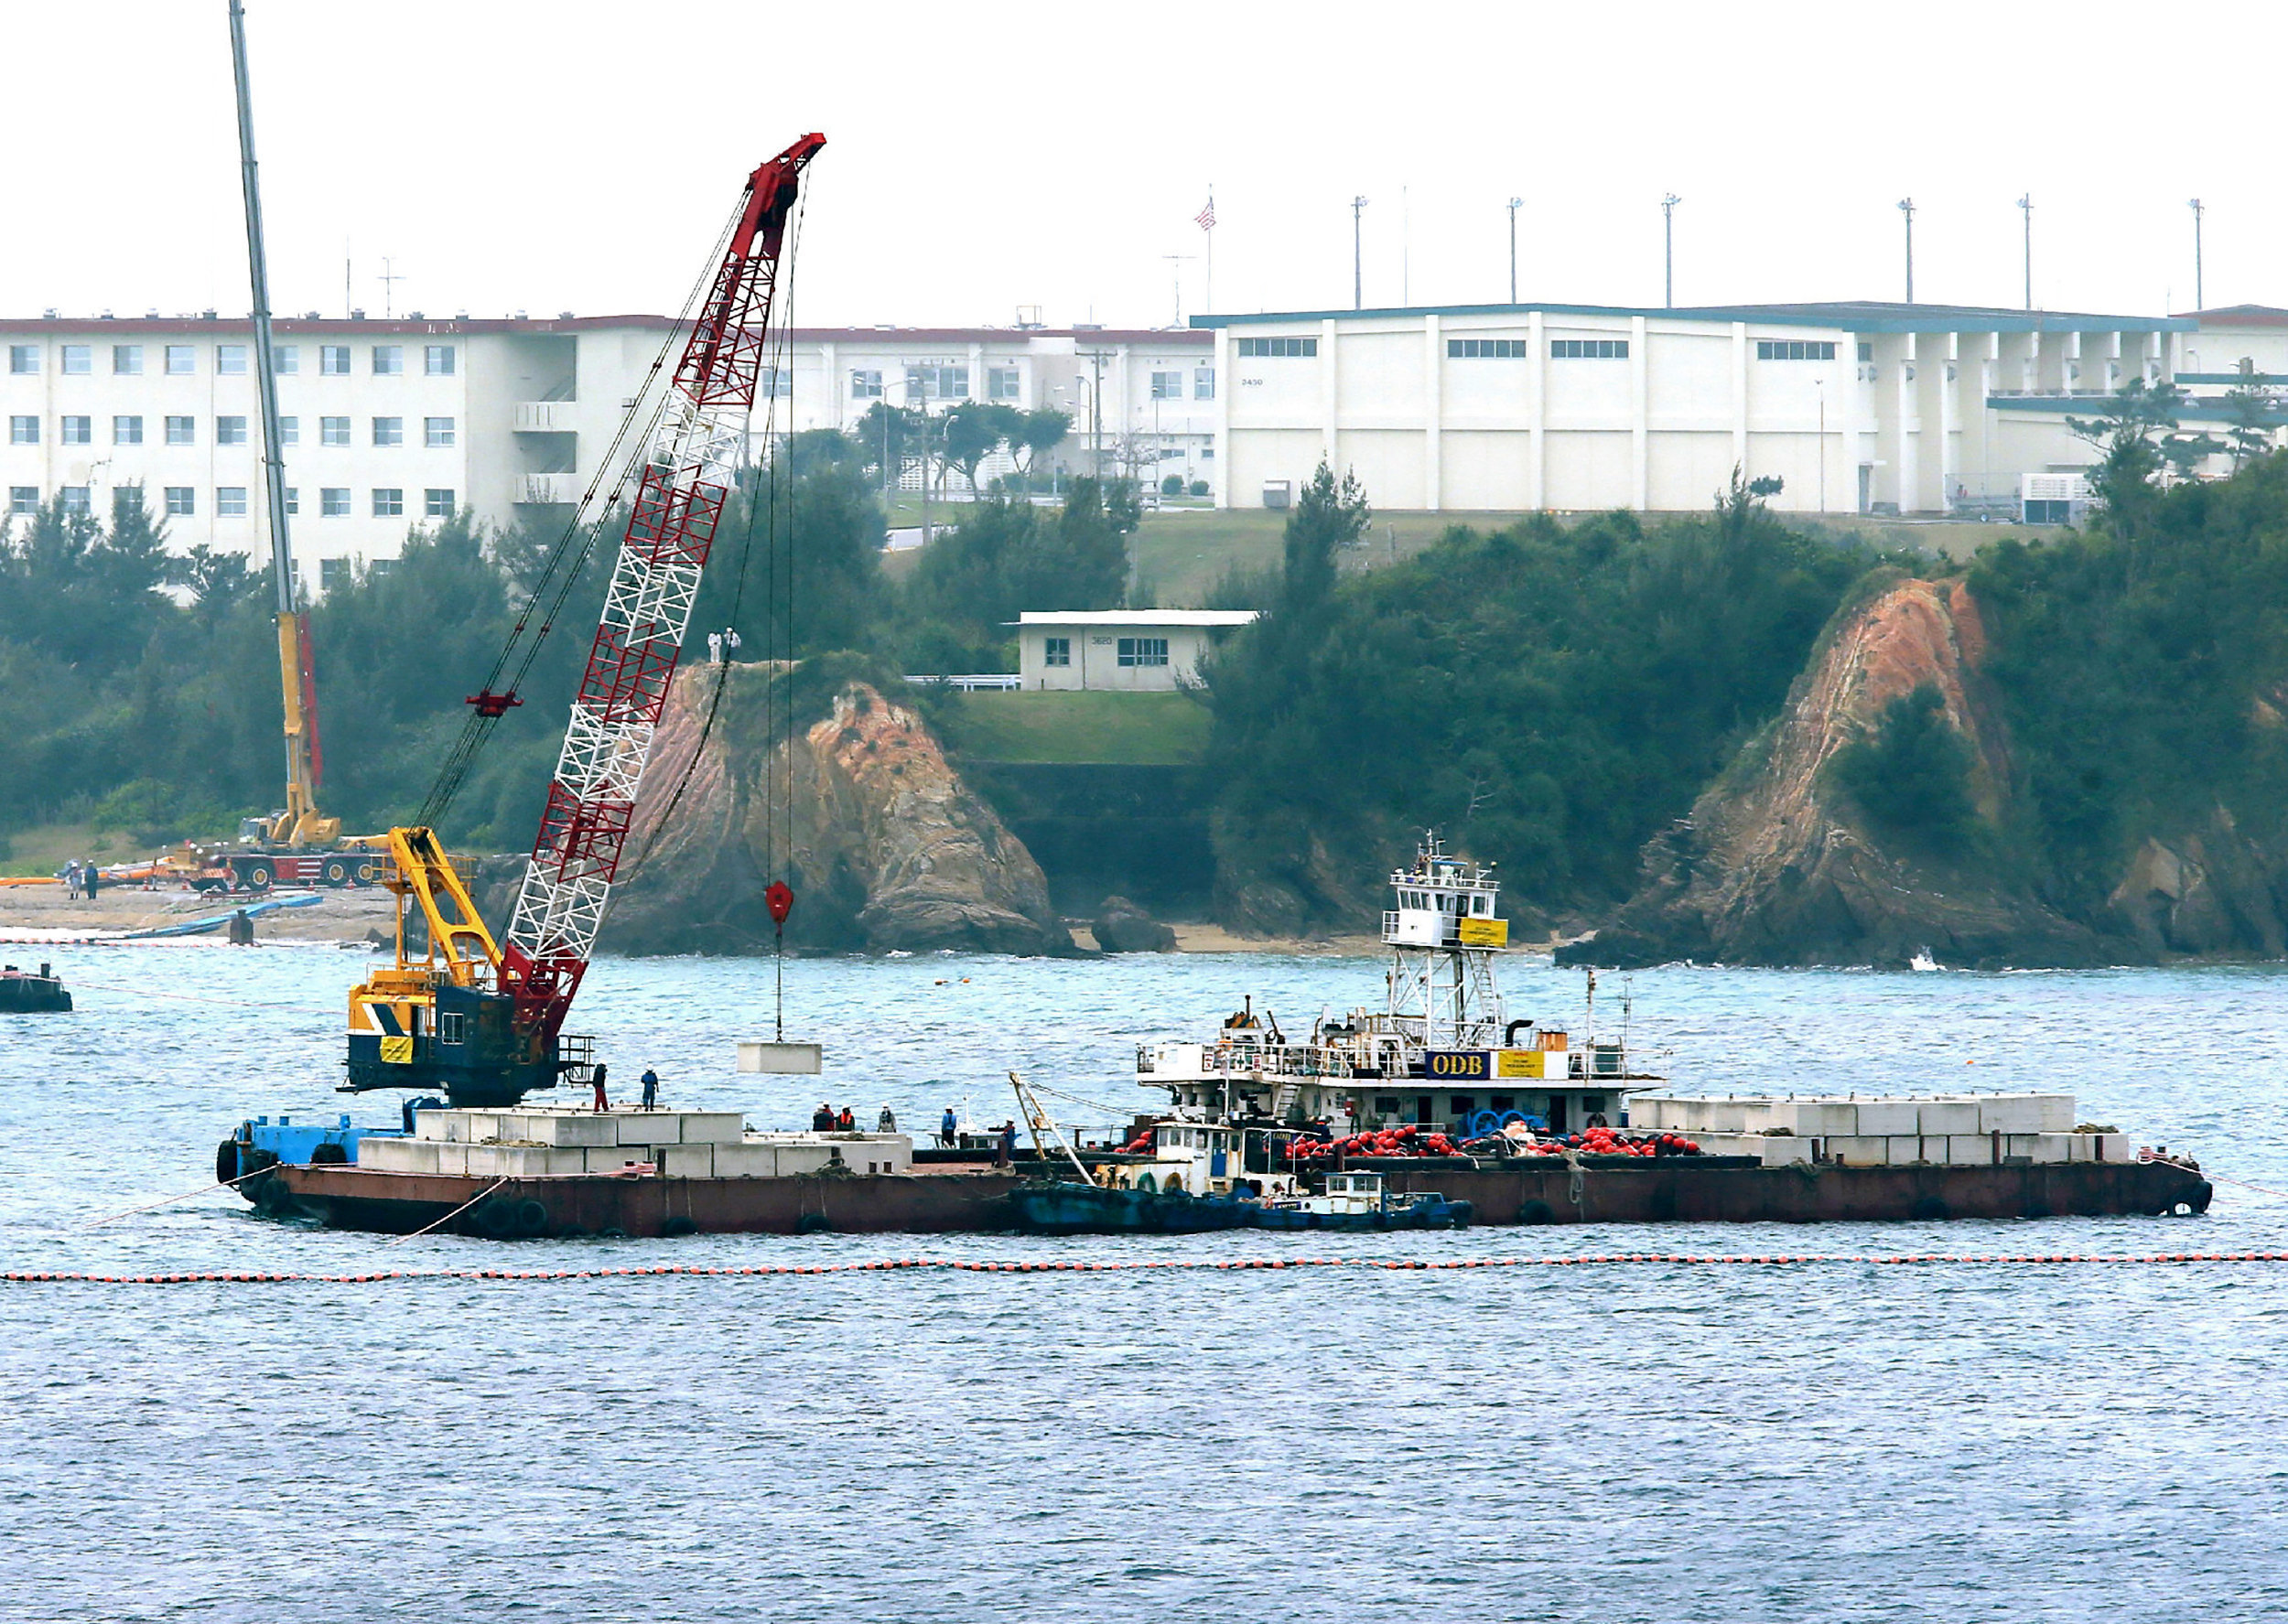 A crane barge works in the Henoko coastal area in Nago, Okinawa prefecture on February 6, 2017